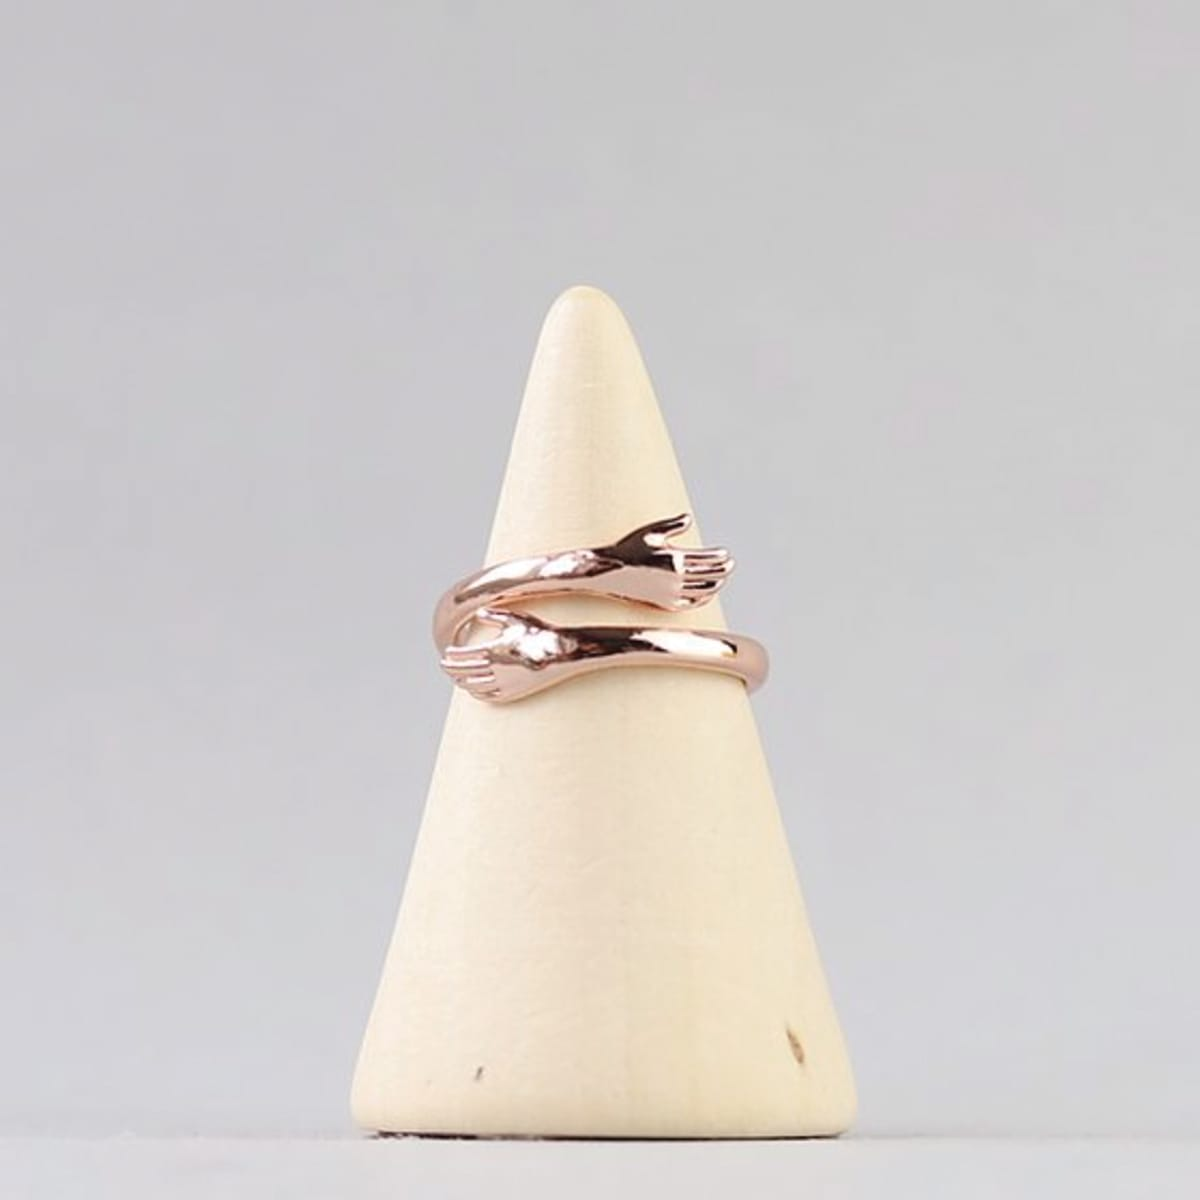 Hug Me Ring, colour rose gold, adjustable to make a comfortable fit from sizes C - Z, comes in an organza bag with a keepsake card